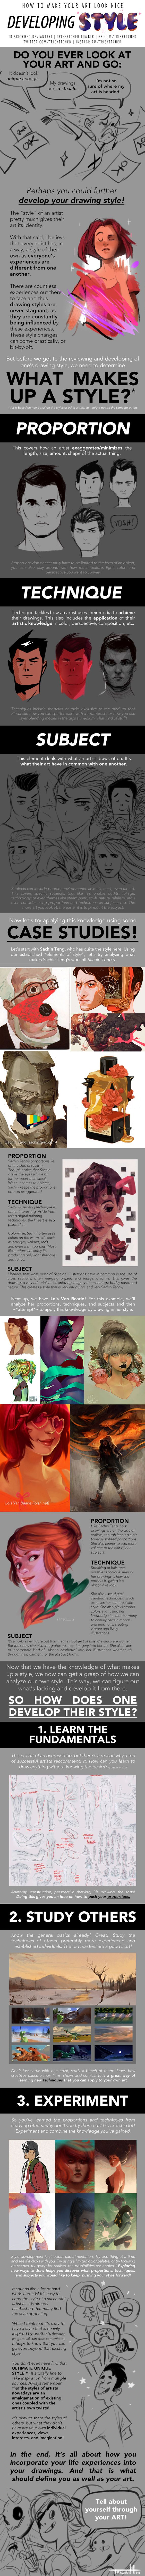 HOW TO MAKE YOUR ART LOOK NICE: Developing Style by trisketched on DeviantArt